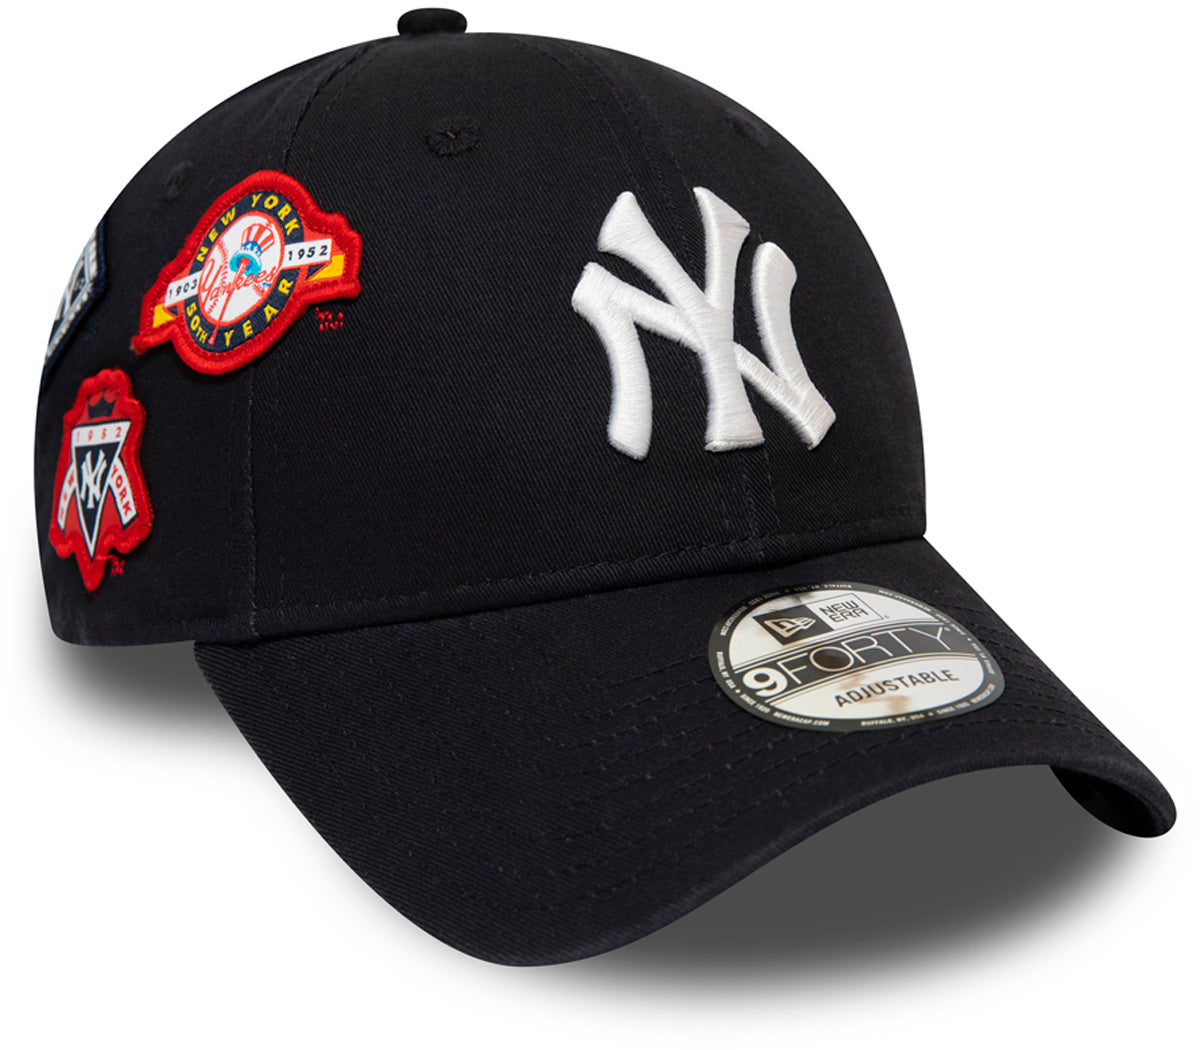 b7a6570c8 NY Yankees Cooperstown Patched New Era 940 Baseball Cap